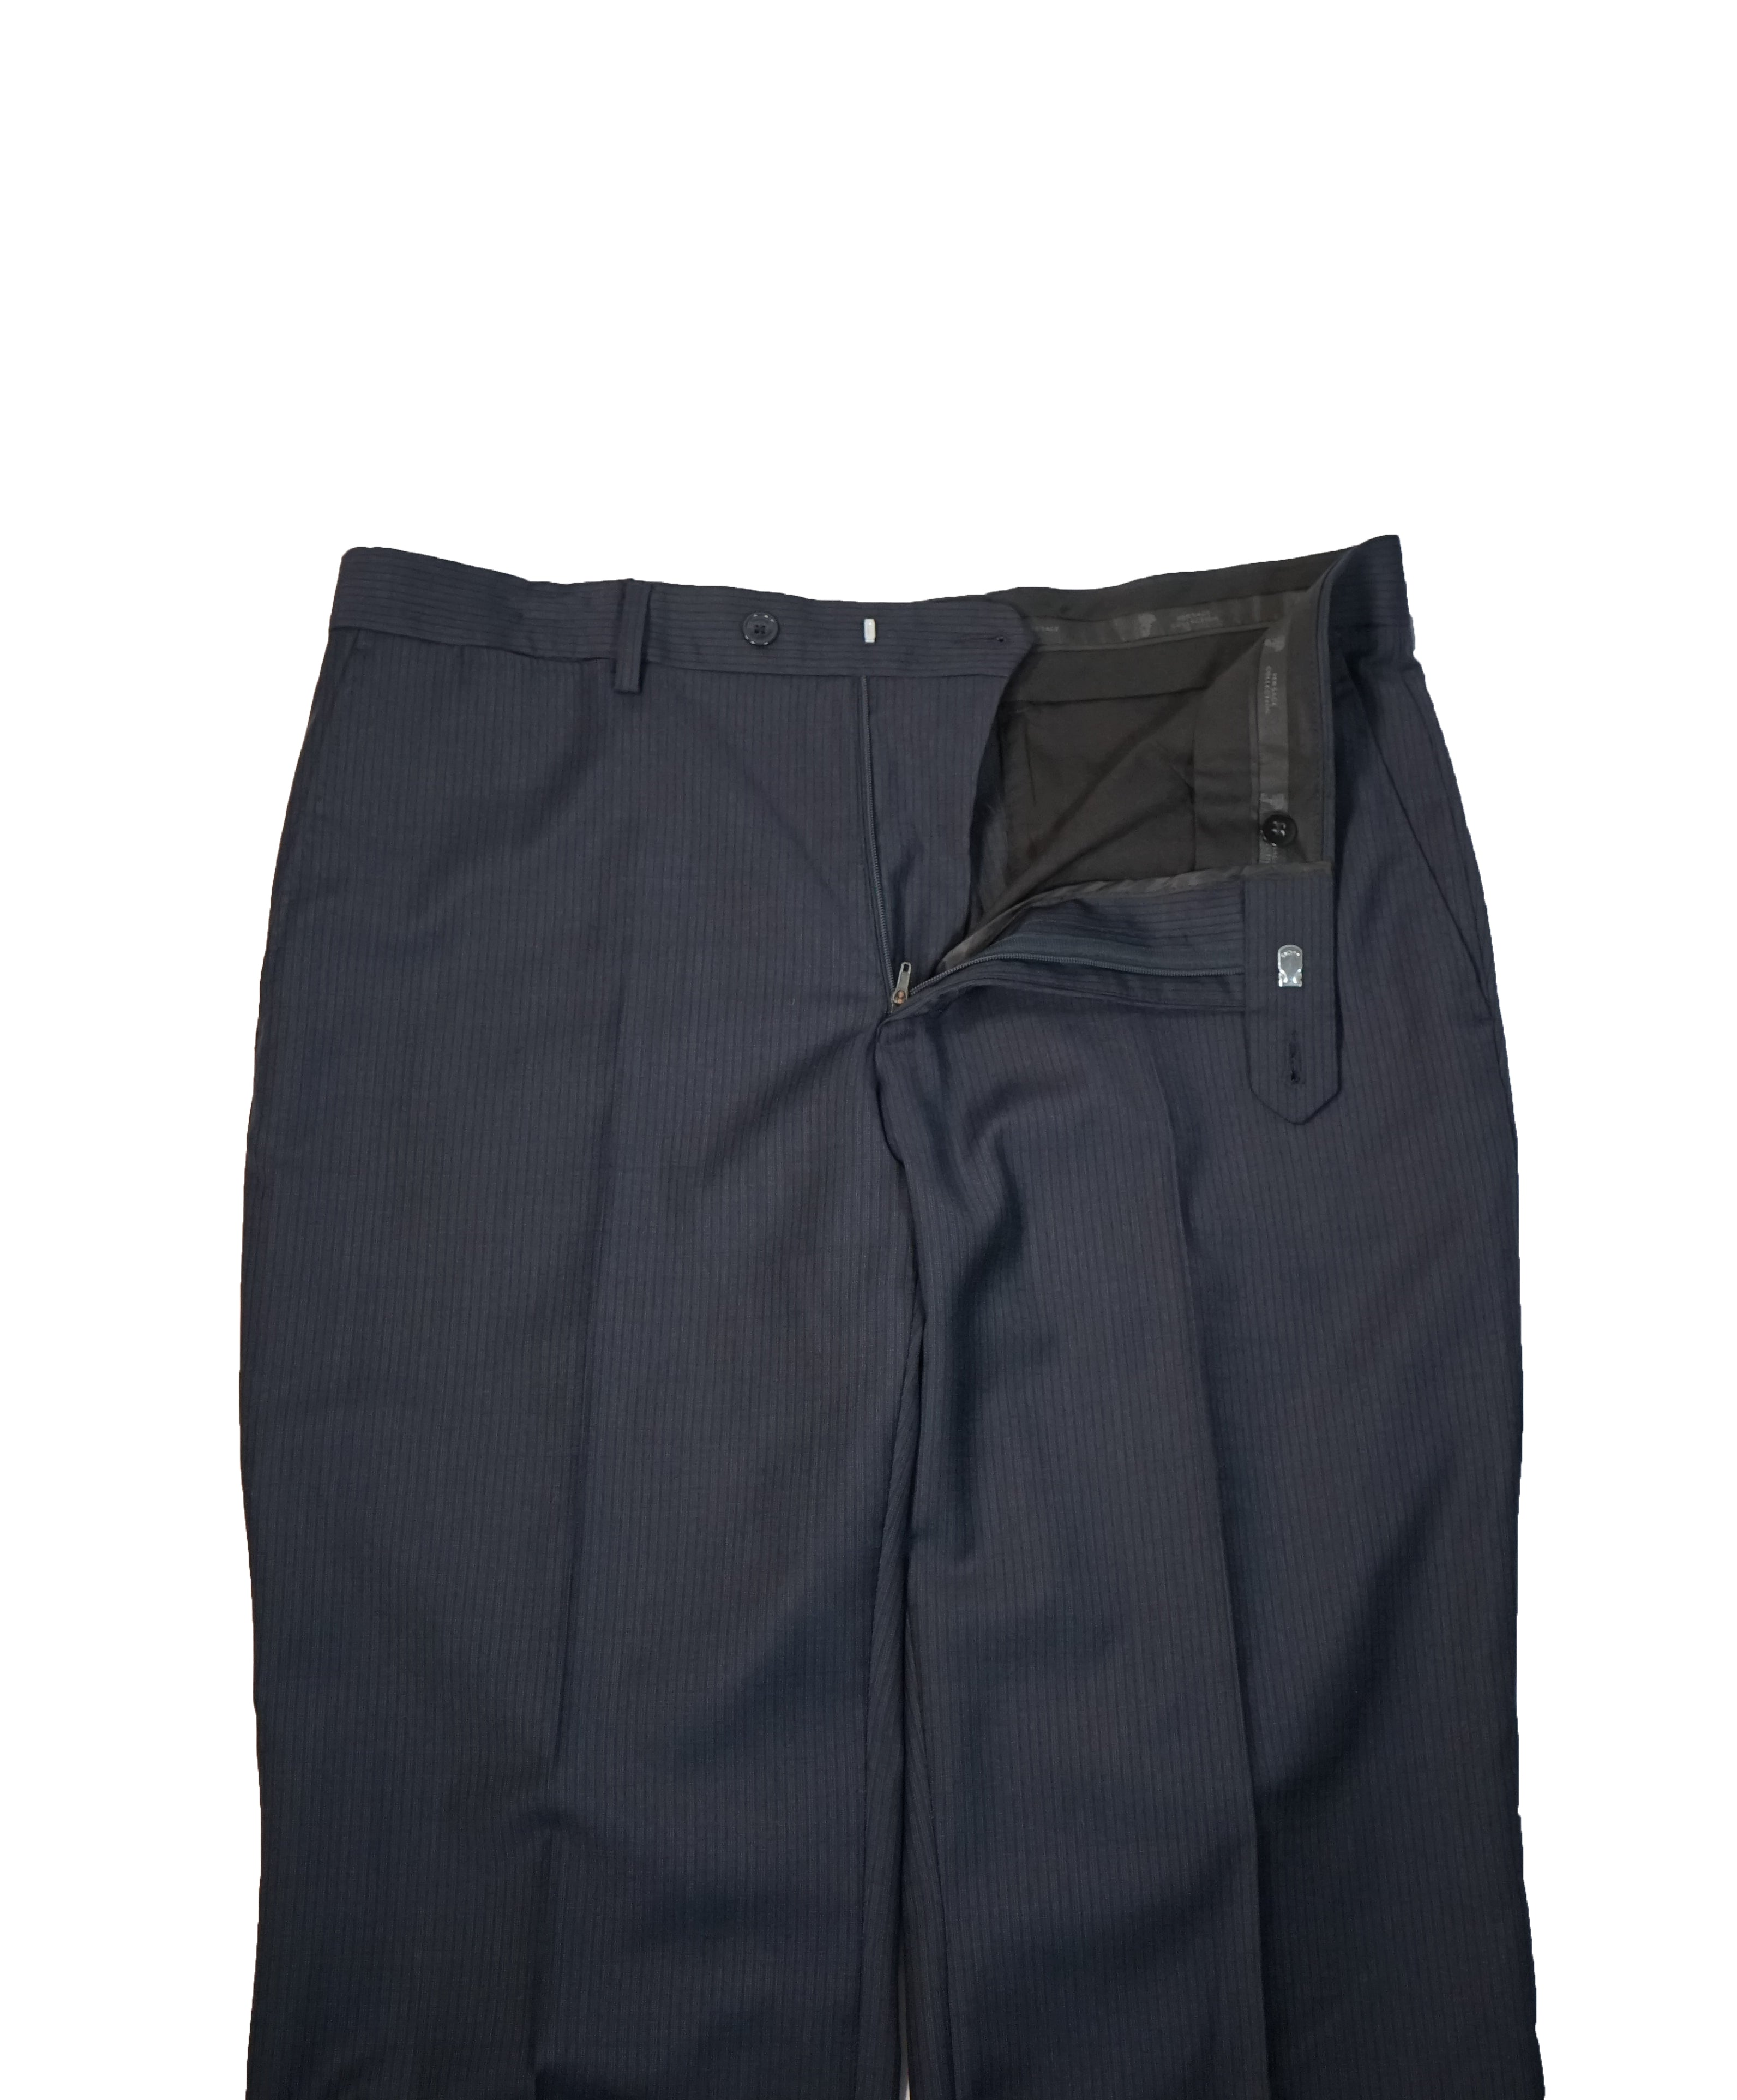 VERSACE COLLECTION - Flat Front Navy Micro Stripe Dress Pants - 36W